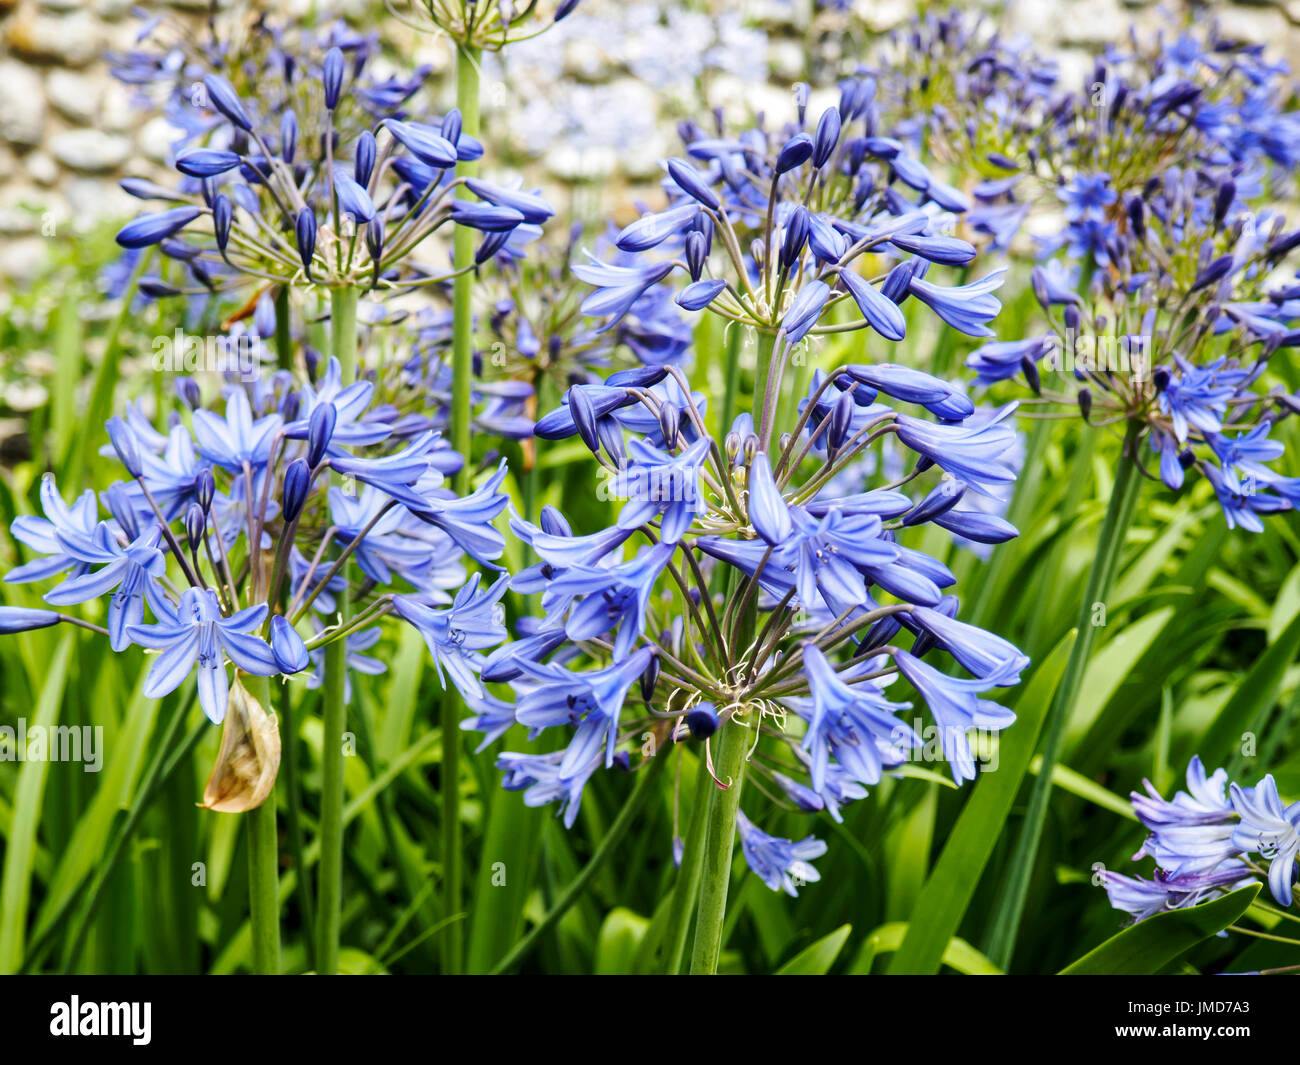 Flowers Of A Blue Agapathus African Lily Plant Of Unknown Variety